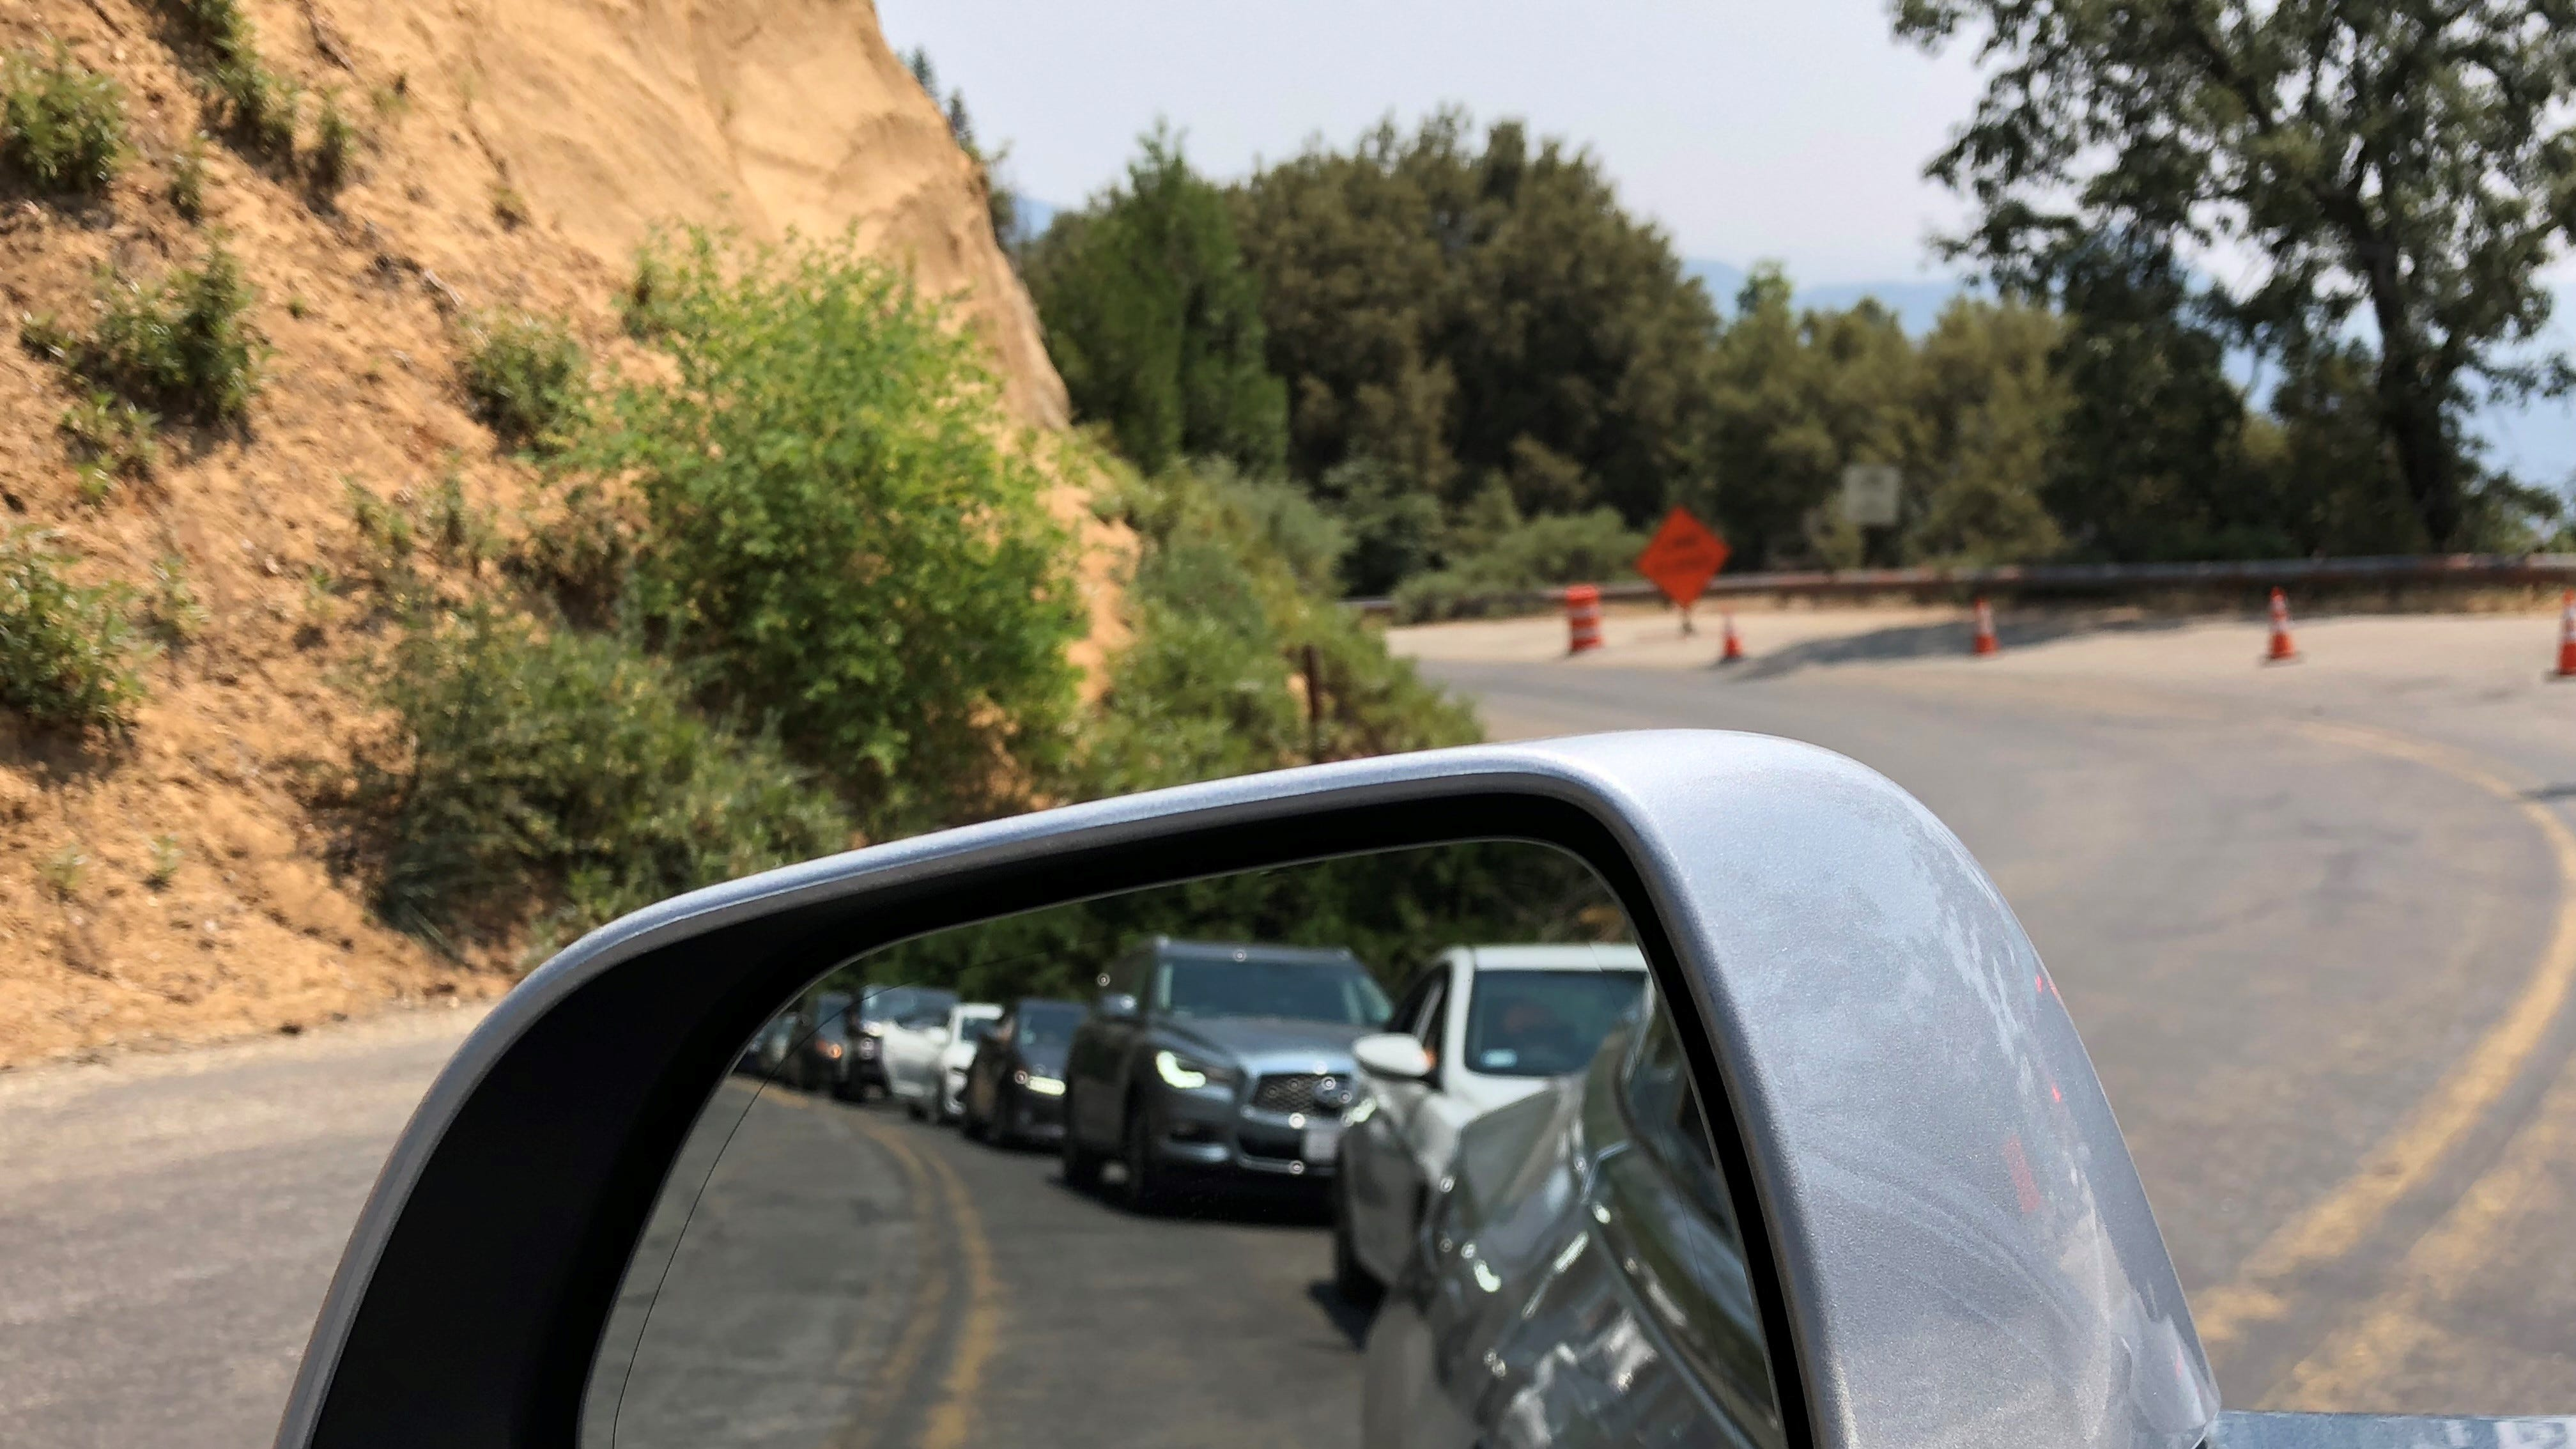 Sequoia National Park visitors wait for road construction to clear inside the park.